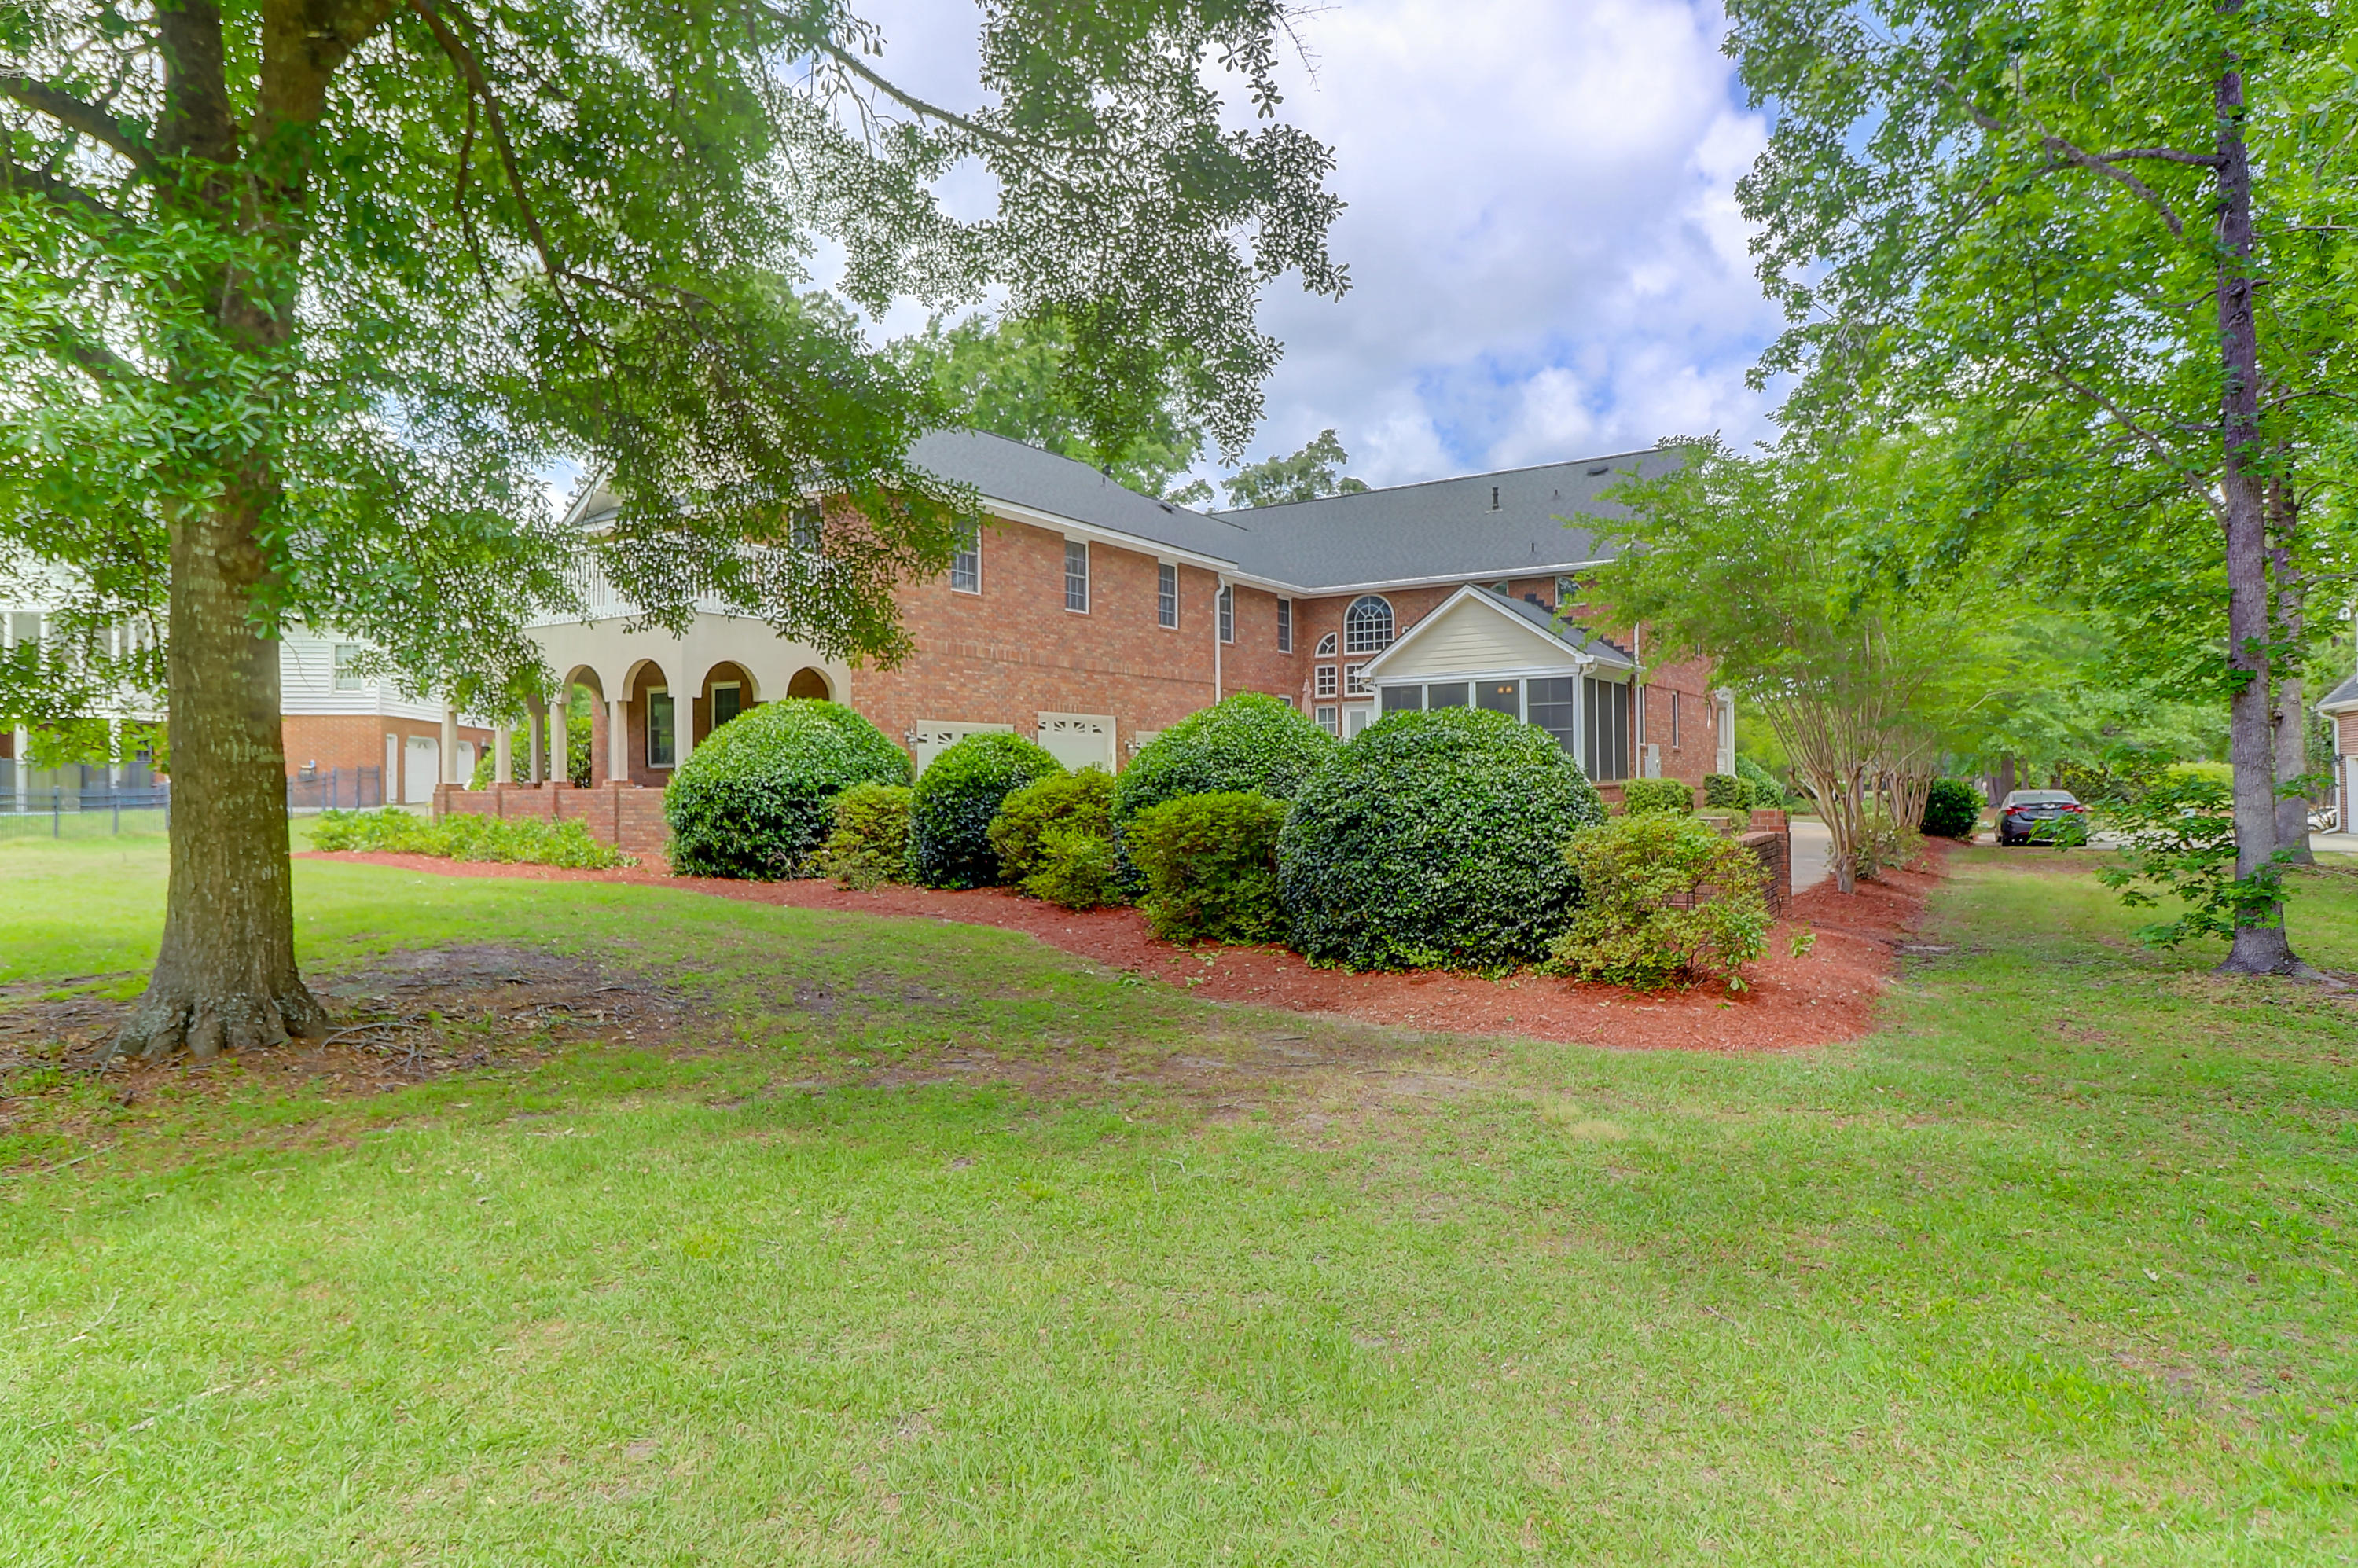 Coosaw Creek Country Club Homes For Sale - 8700 Fairway Woods, North Charleston, SC - 2